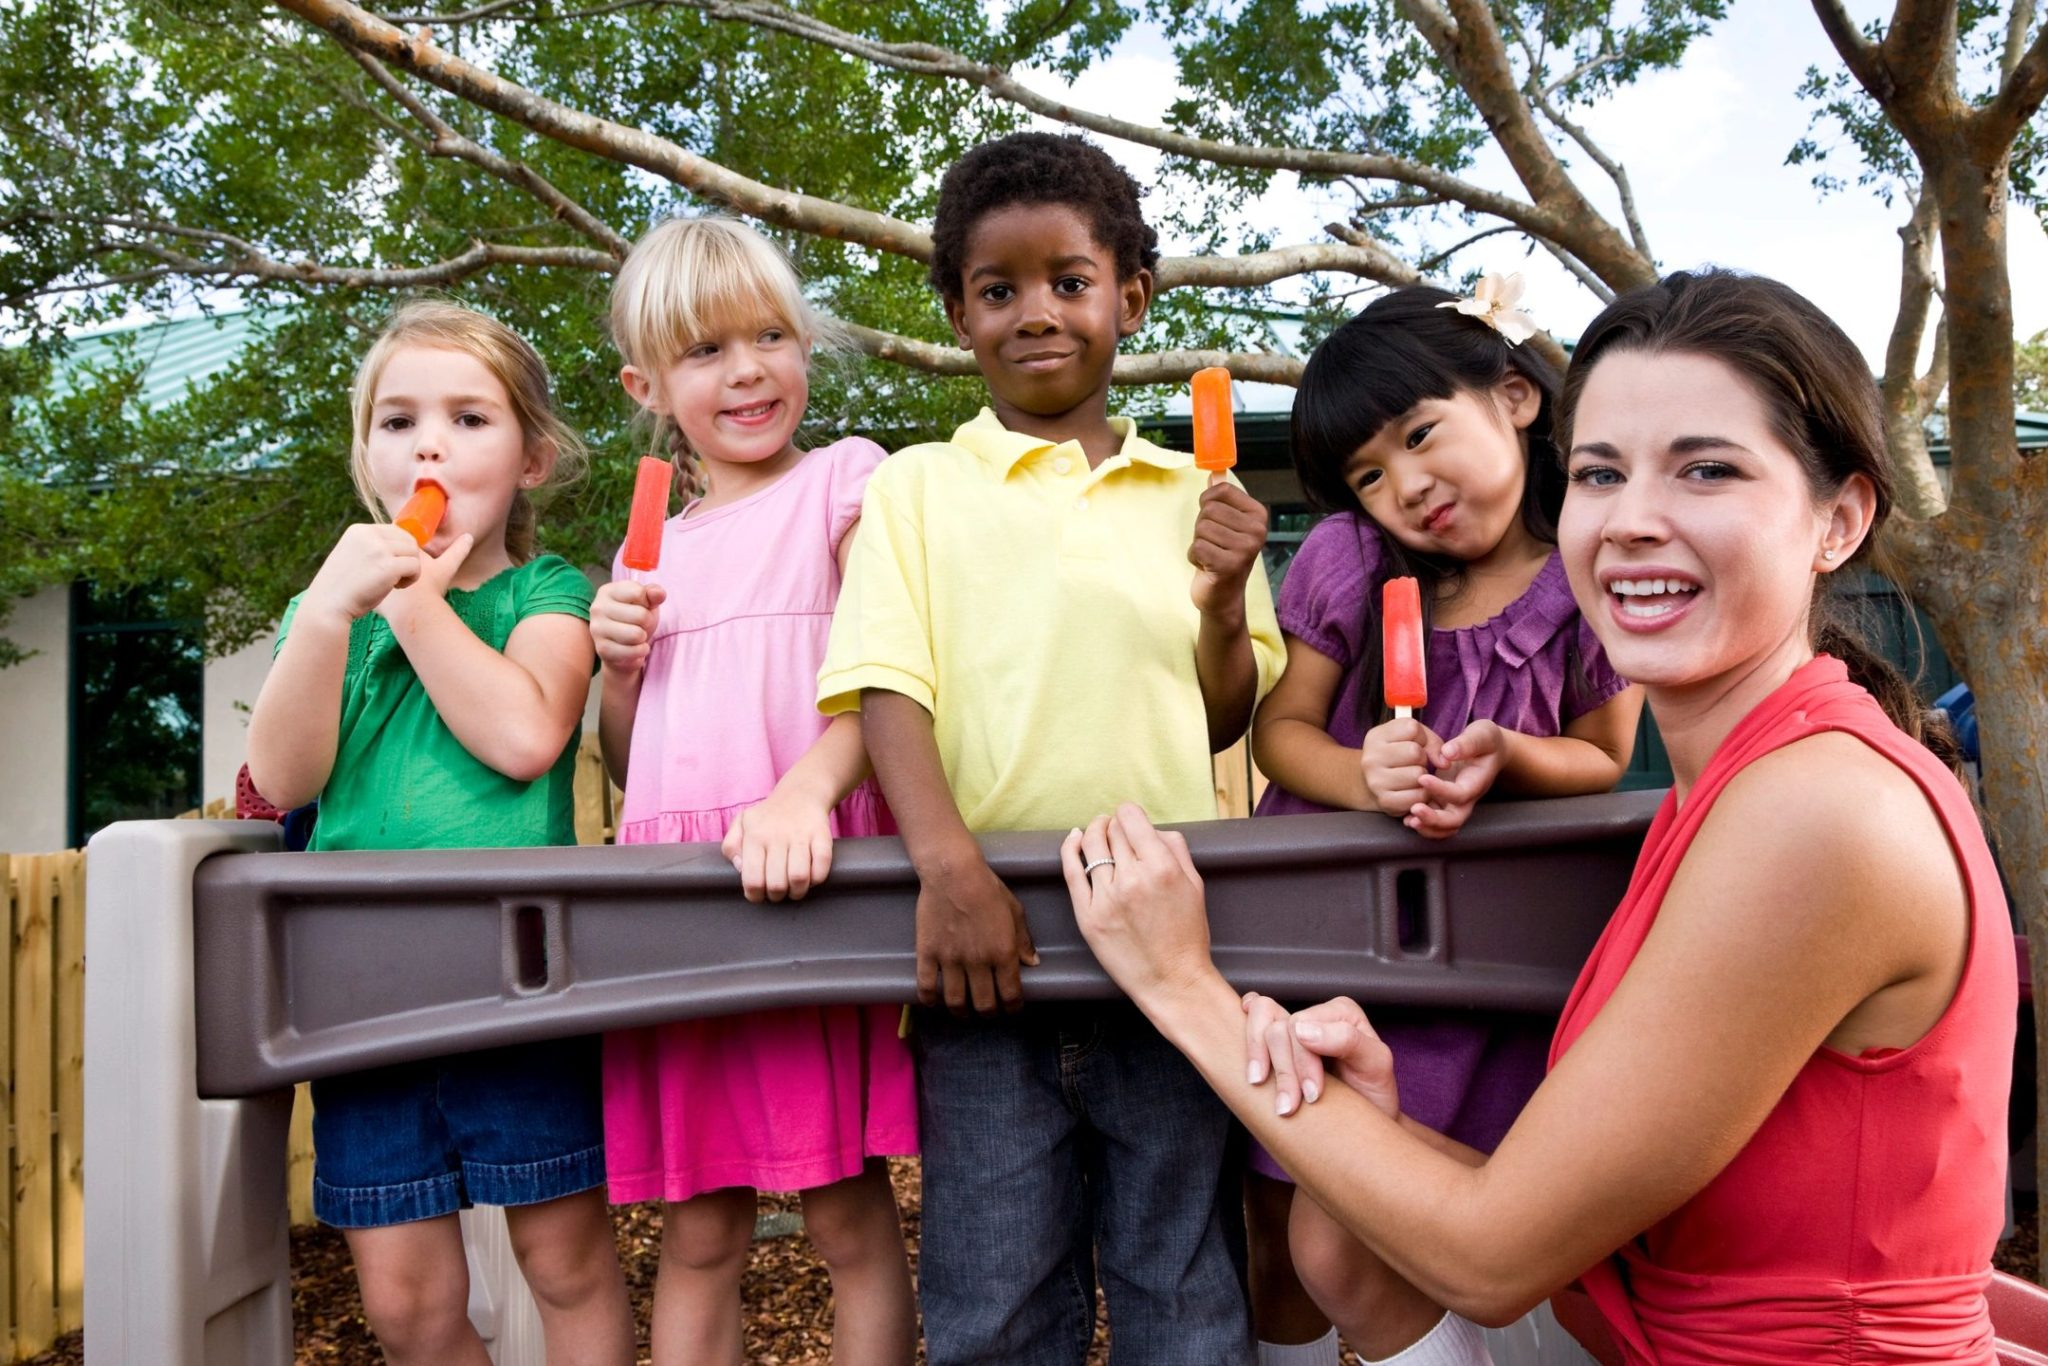 INSURANCE FOR LICENSED CHILDCARE AGENCIES